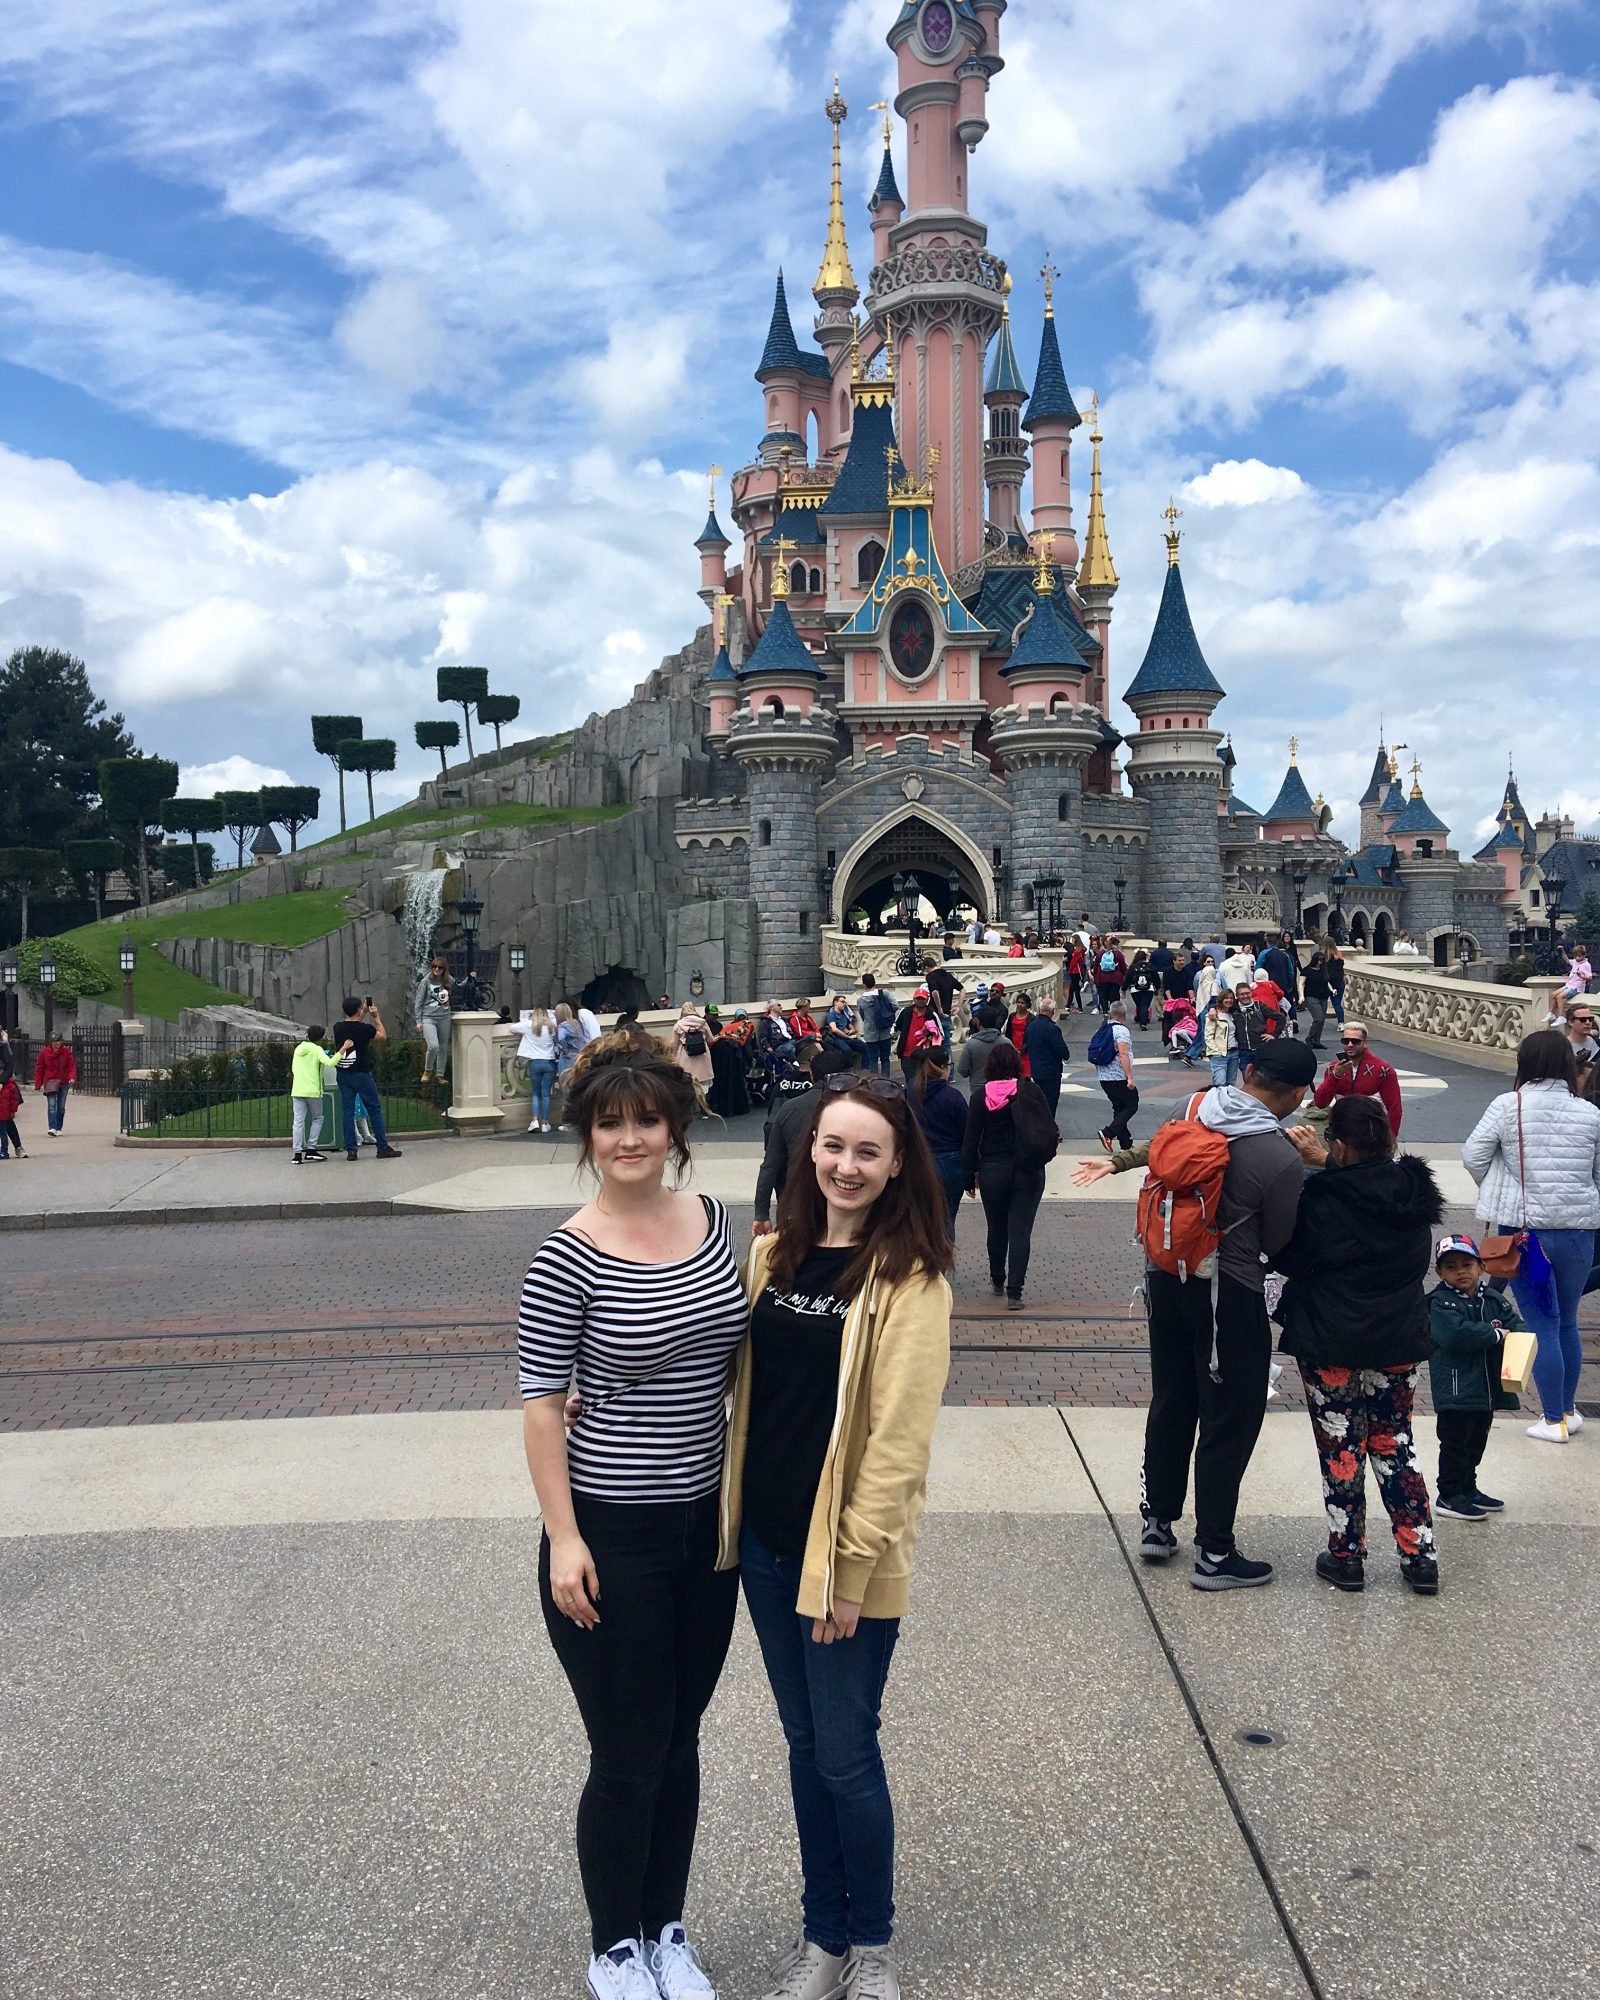 pippa and izzy stood outside in front of pink disneyland paris castle